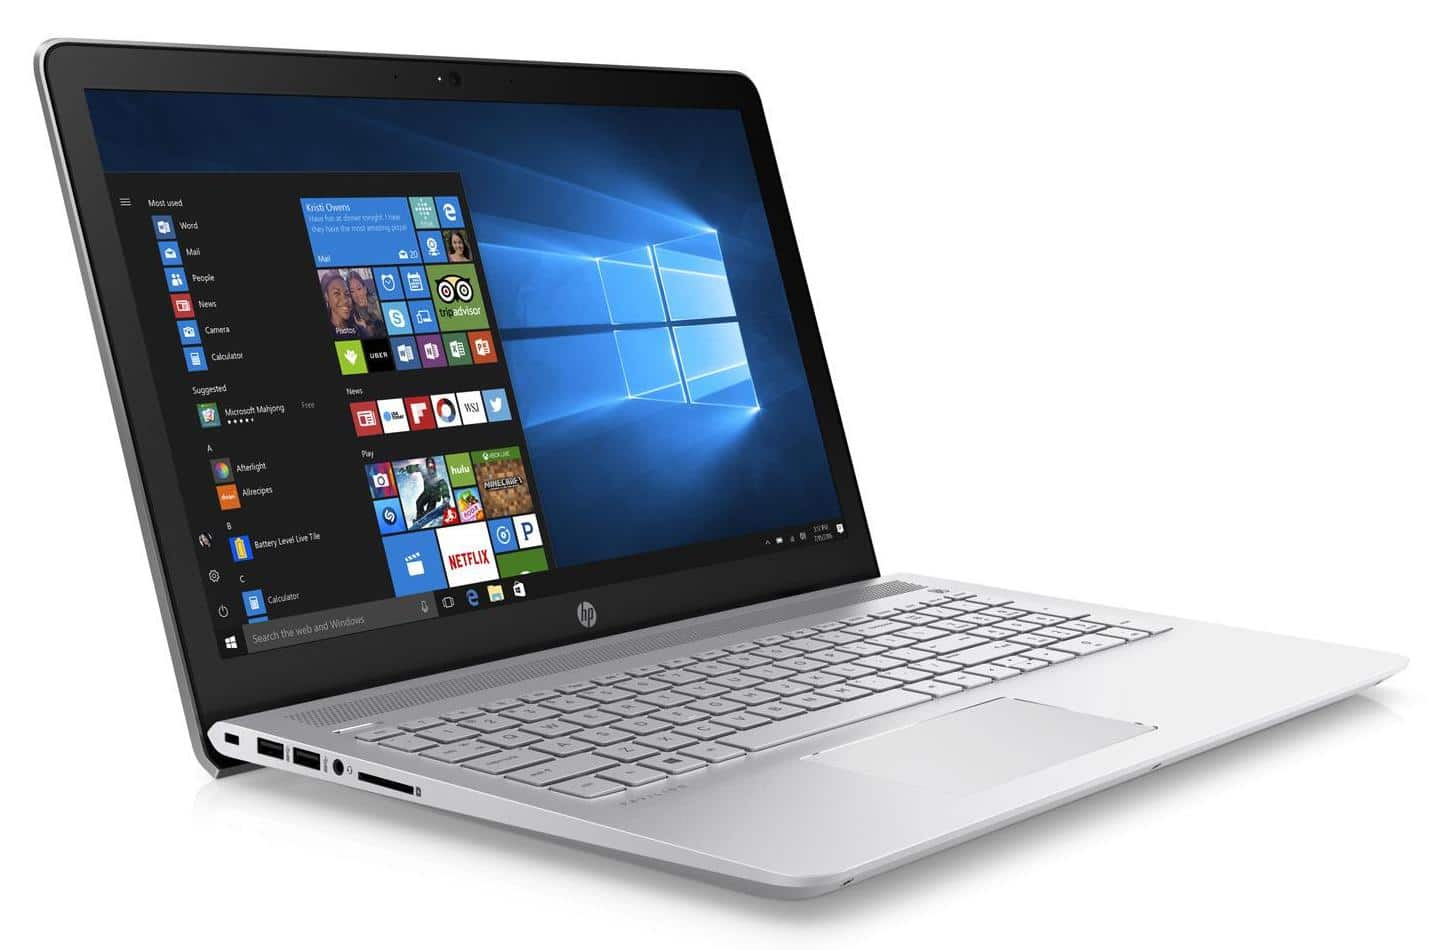 HP Pavilion 15-cc508nf, ultrabook 15 pouces Full HD i5 SSD 940MX (699€)